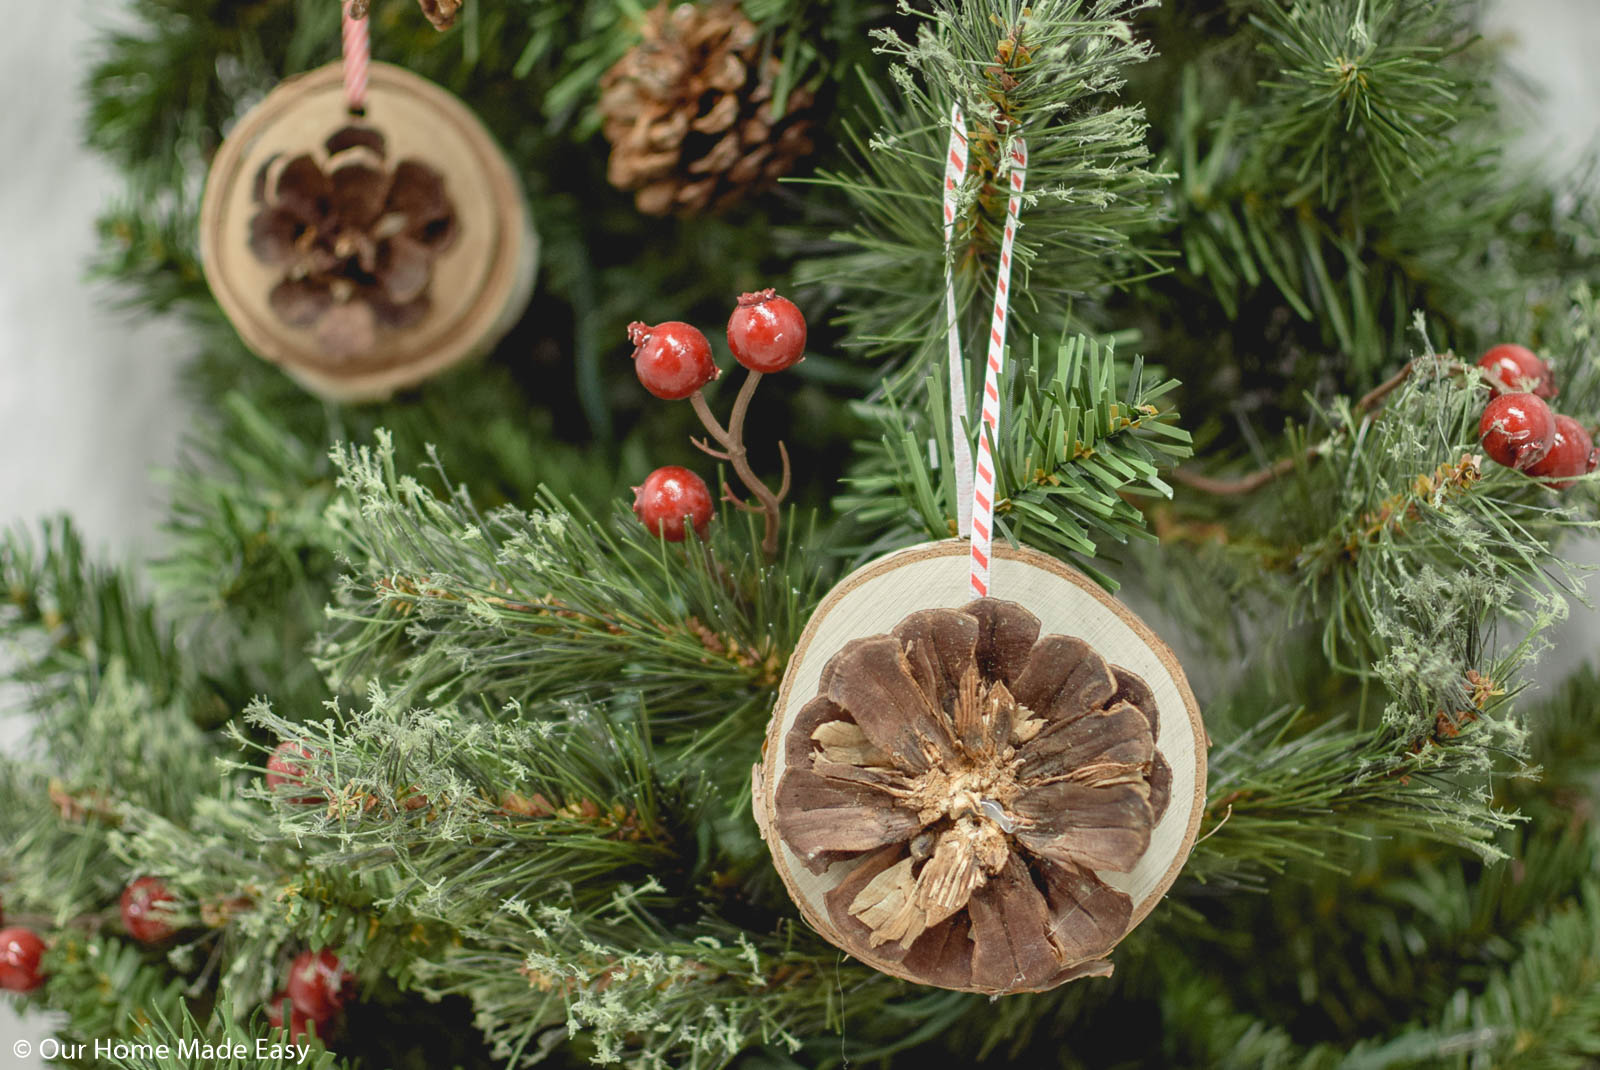 These adorable rustic wood slice ornaments are a perfect touch to a rustic Christmas tree design